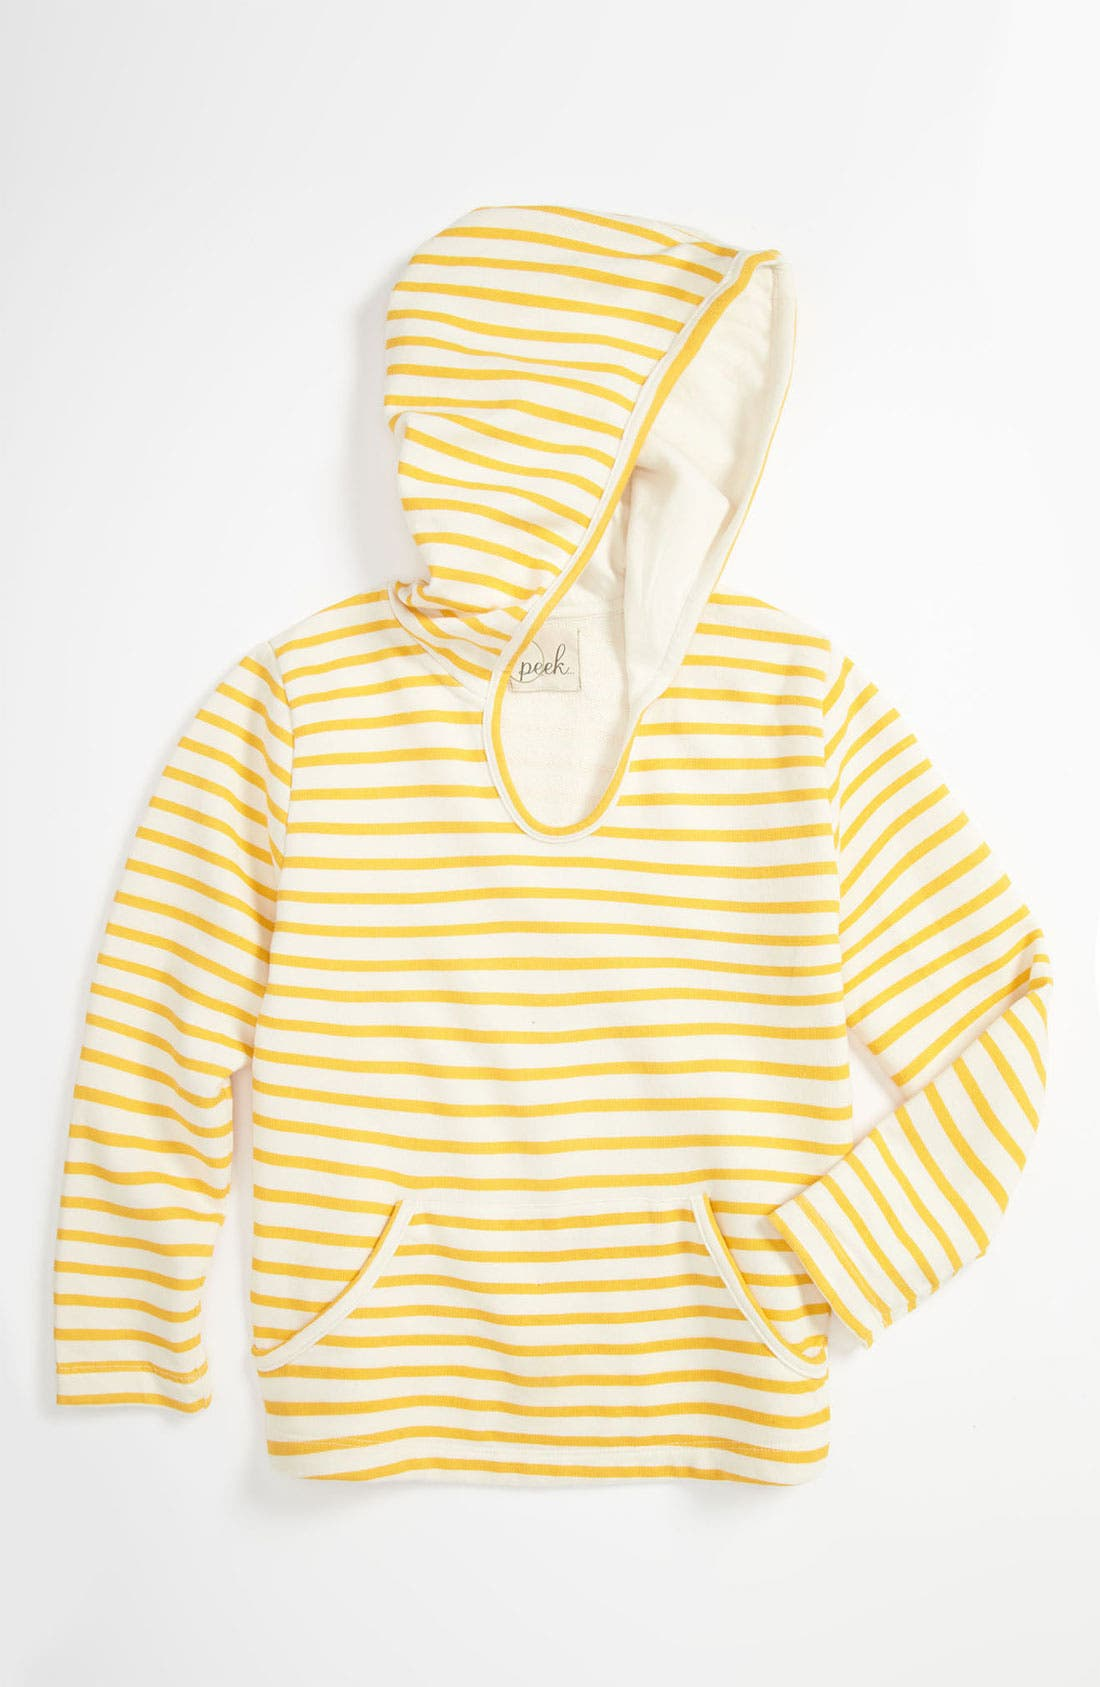 Alternate Image 1 Selected - Peek 'Flag' Hoodie (Toddler, Little Girls & Big Girls)